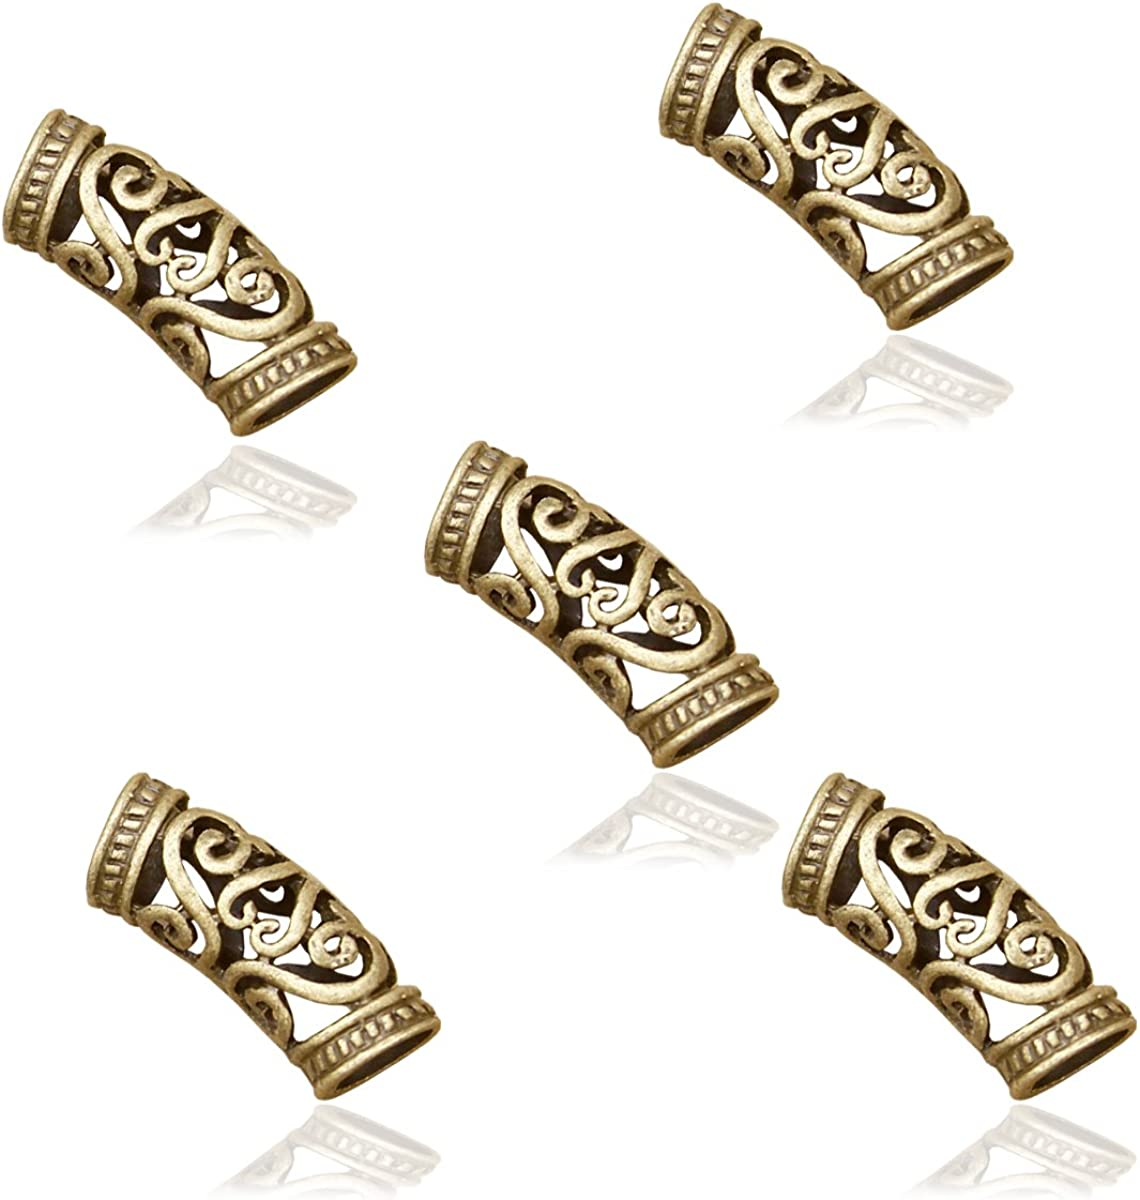 Set Of 5 A Norse Dread Beads Dreadlock Hair  Beard Beads 57mm Hole Viking Beads Stainless Steel 316-932 Inch